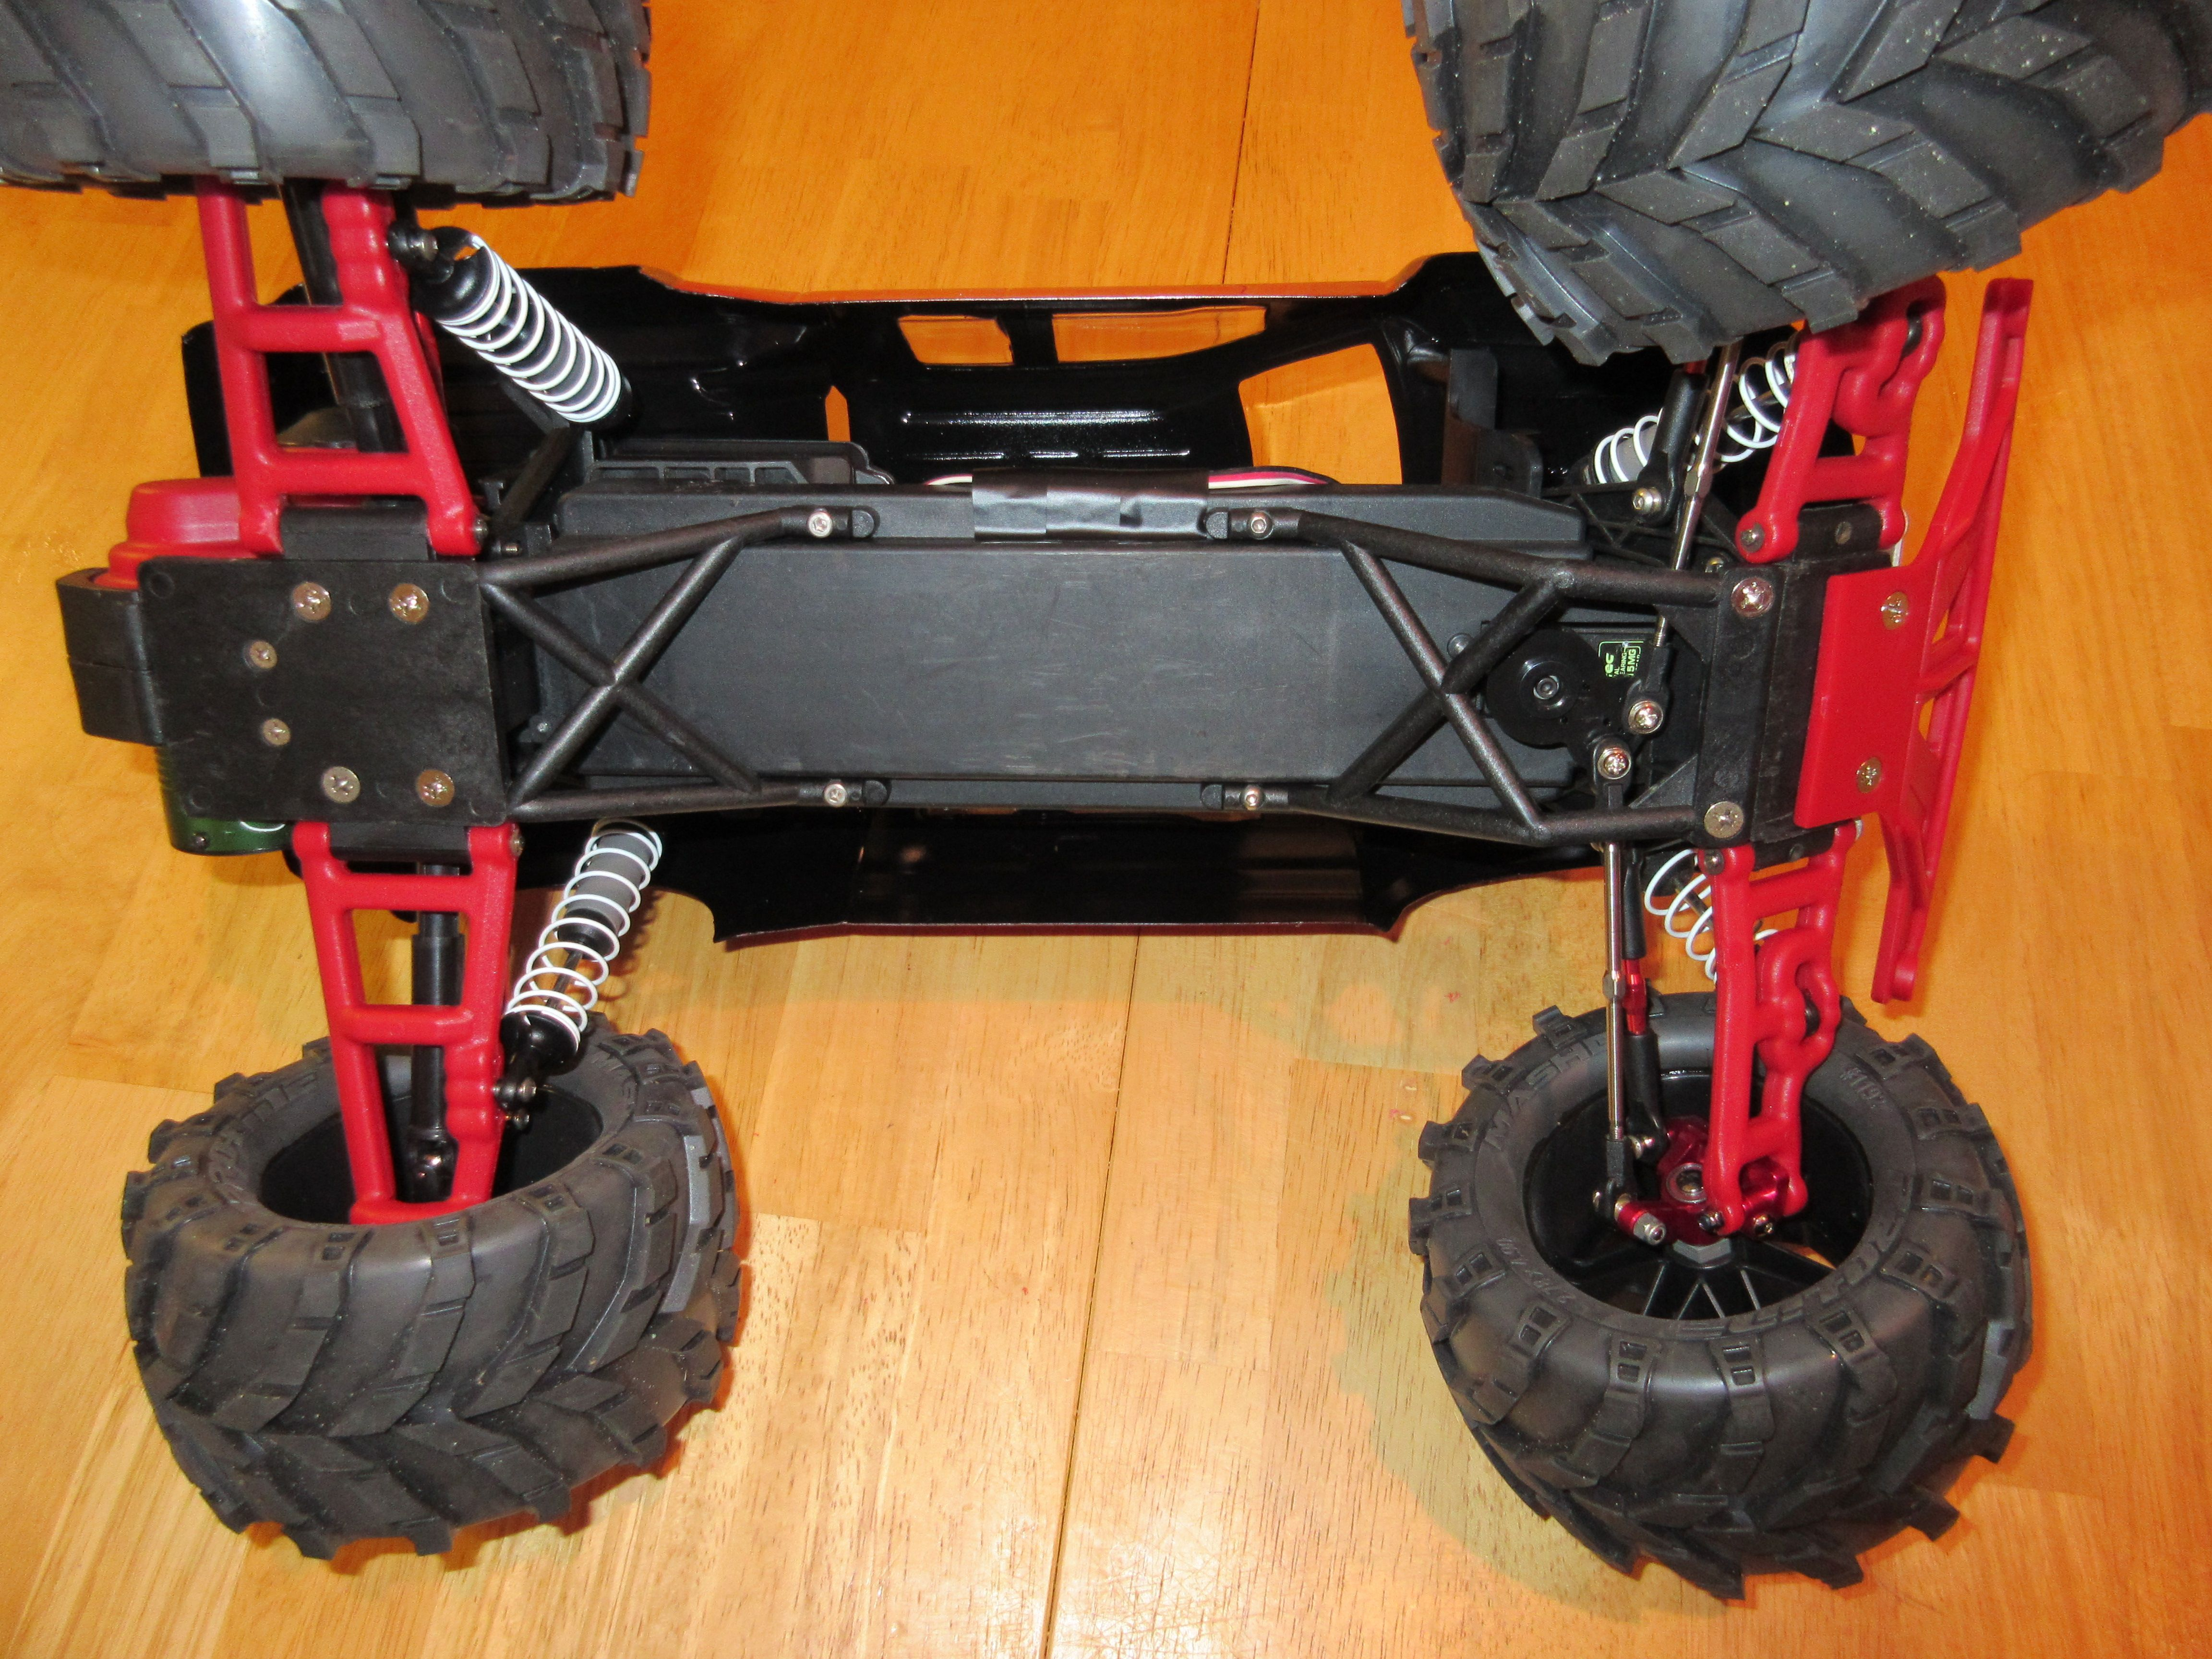 Red RPM Parts for Traxxas Stampede – RCCoachWorks